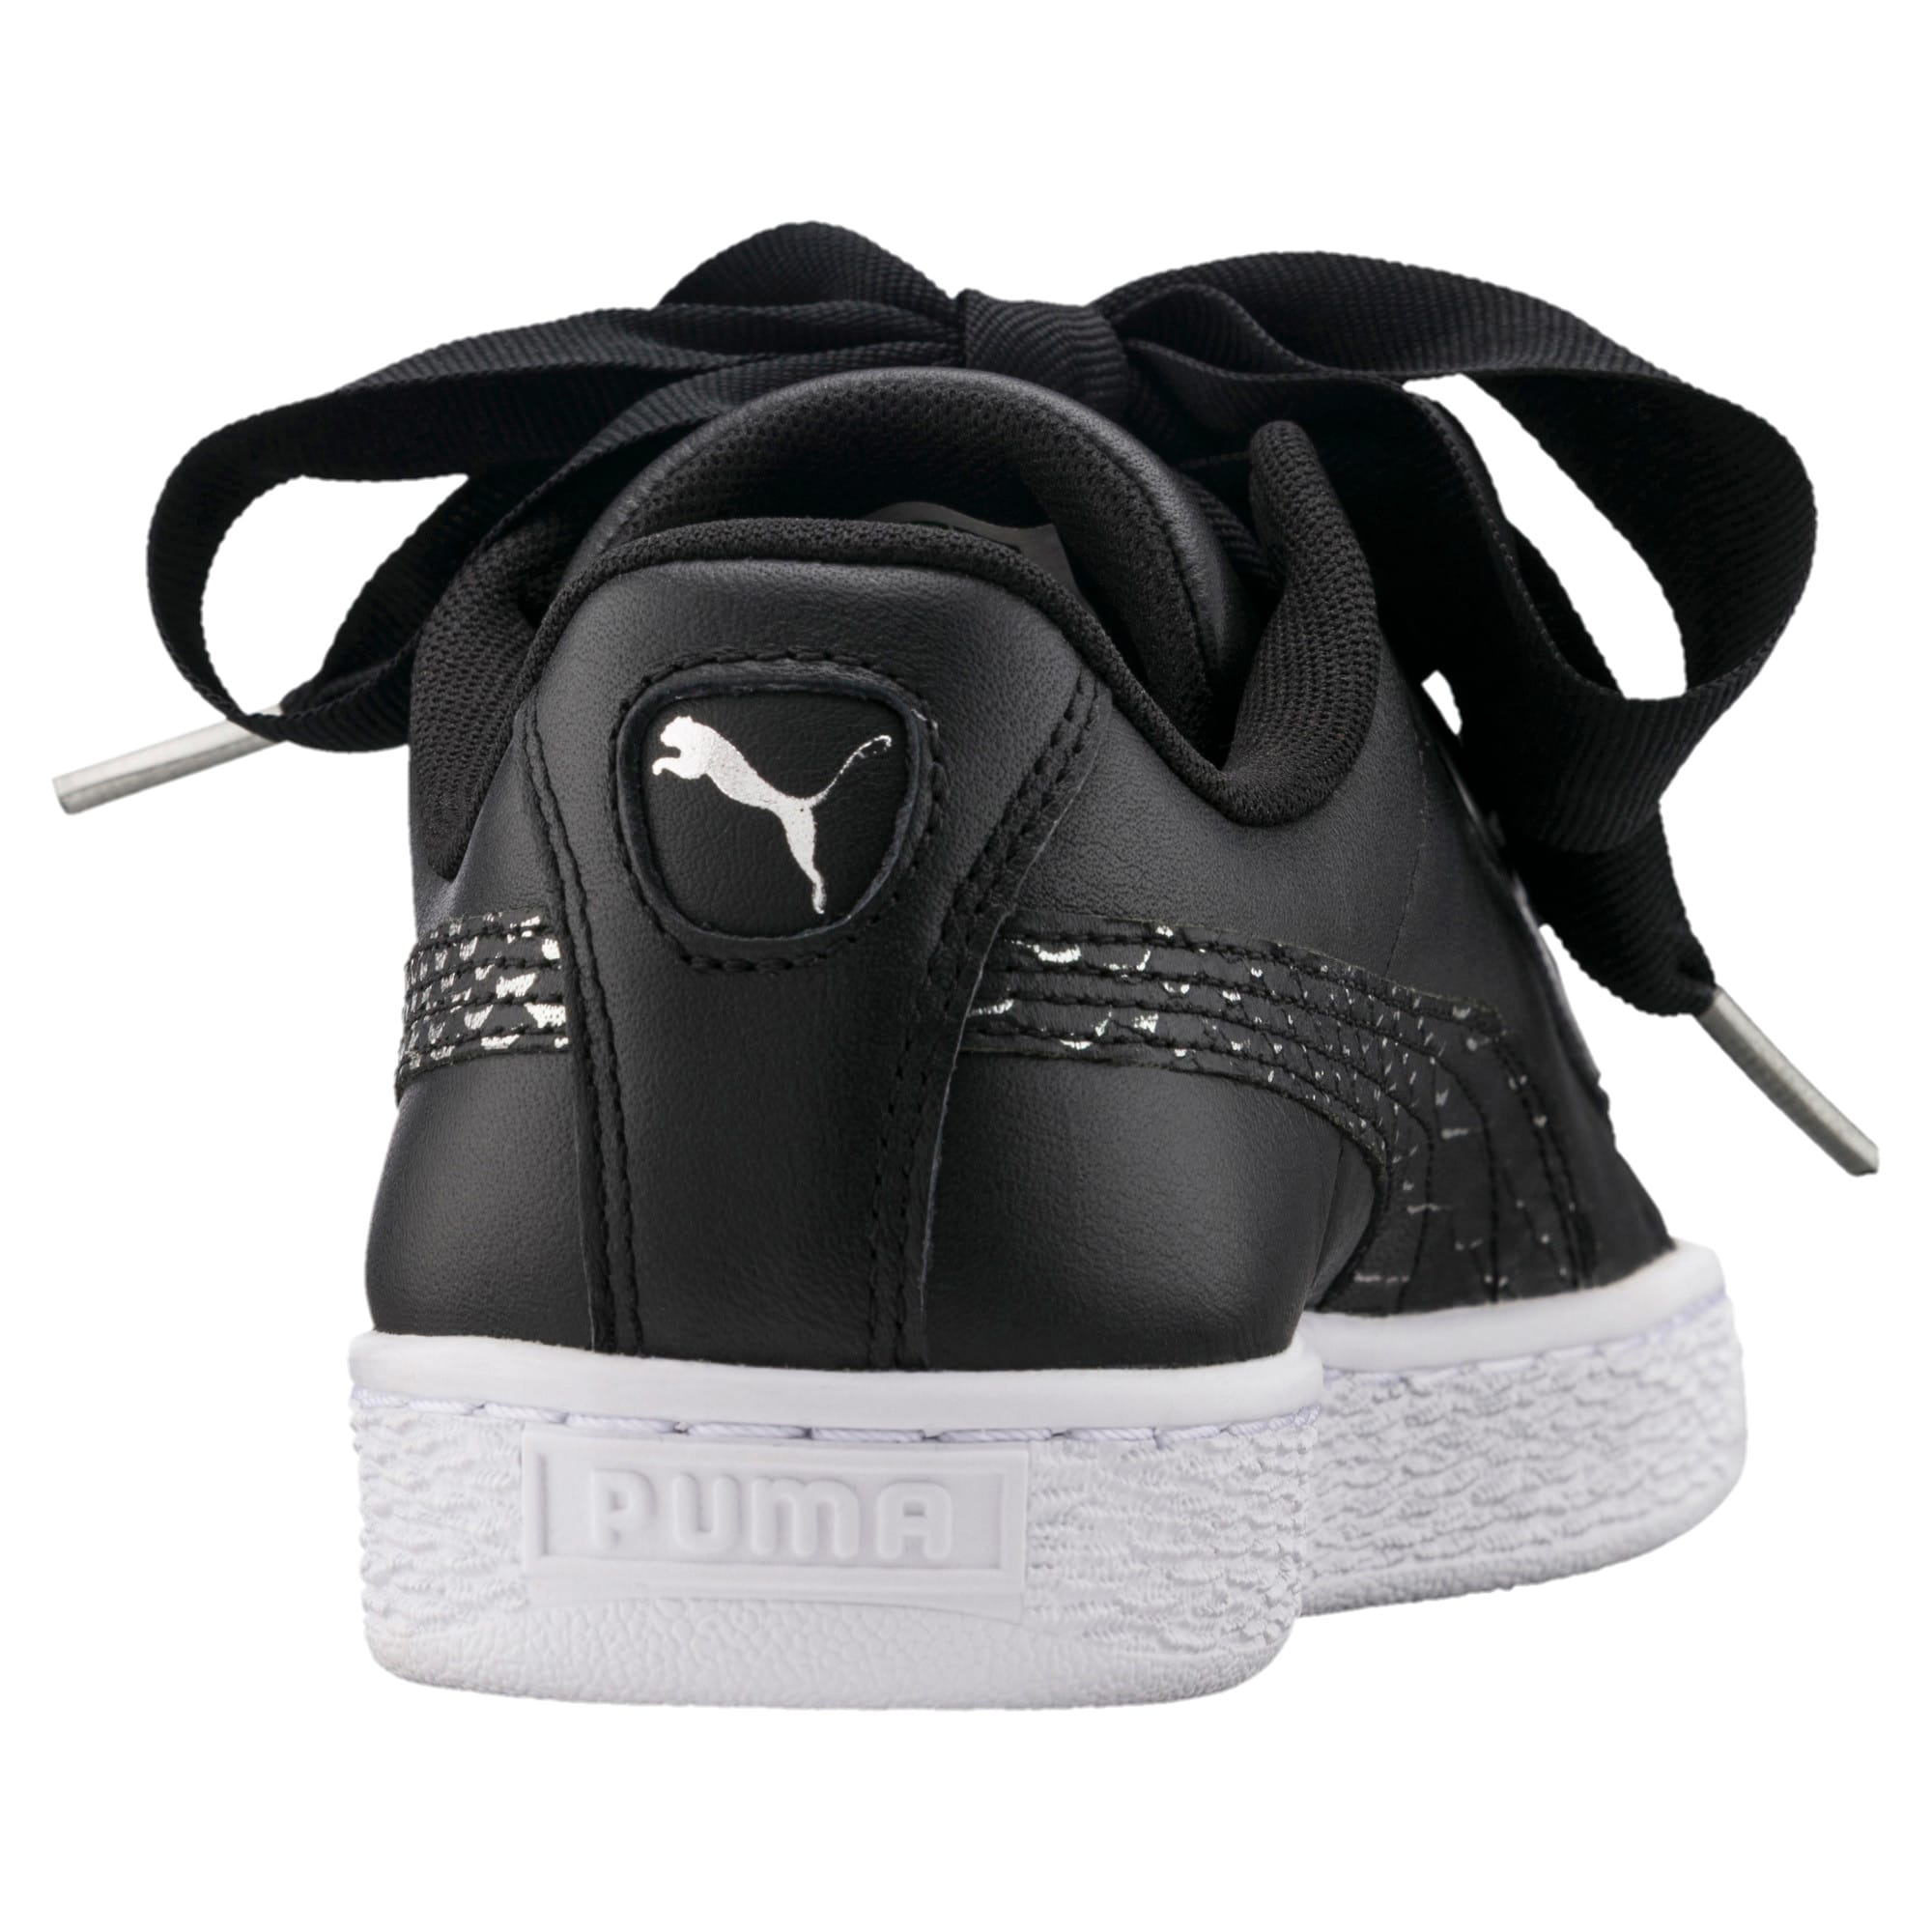 Thumbnail 4 of Basket Heart Oceanaire Women's Trainers, Puma Black-Puma White, medium-IND